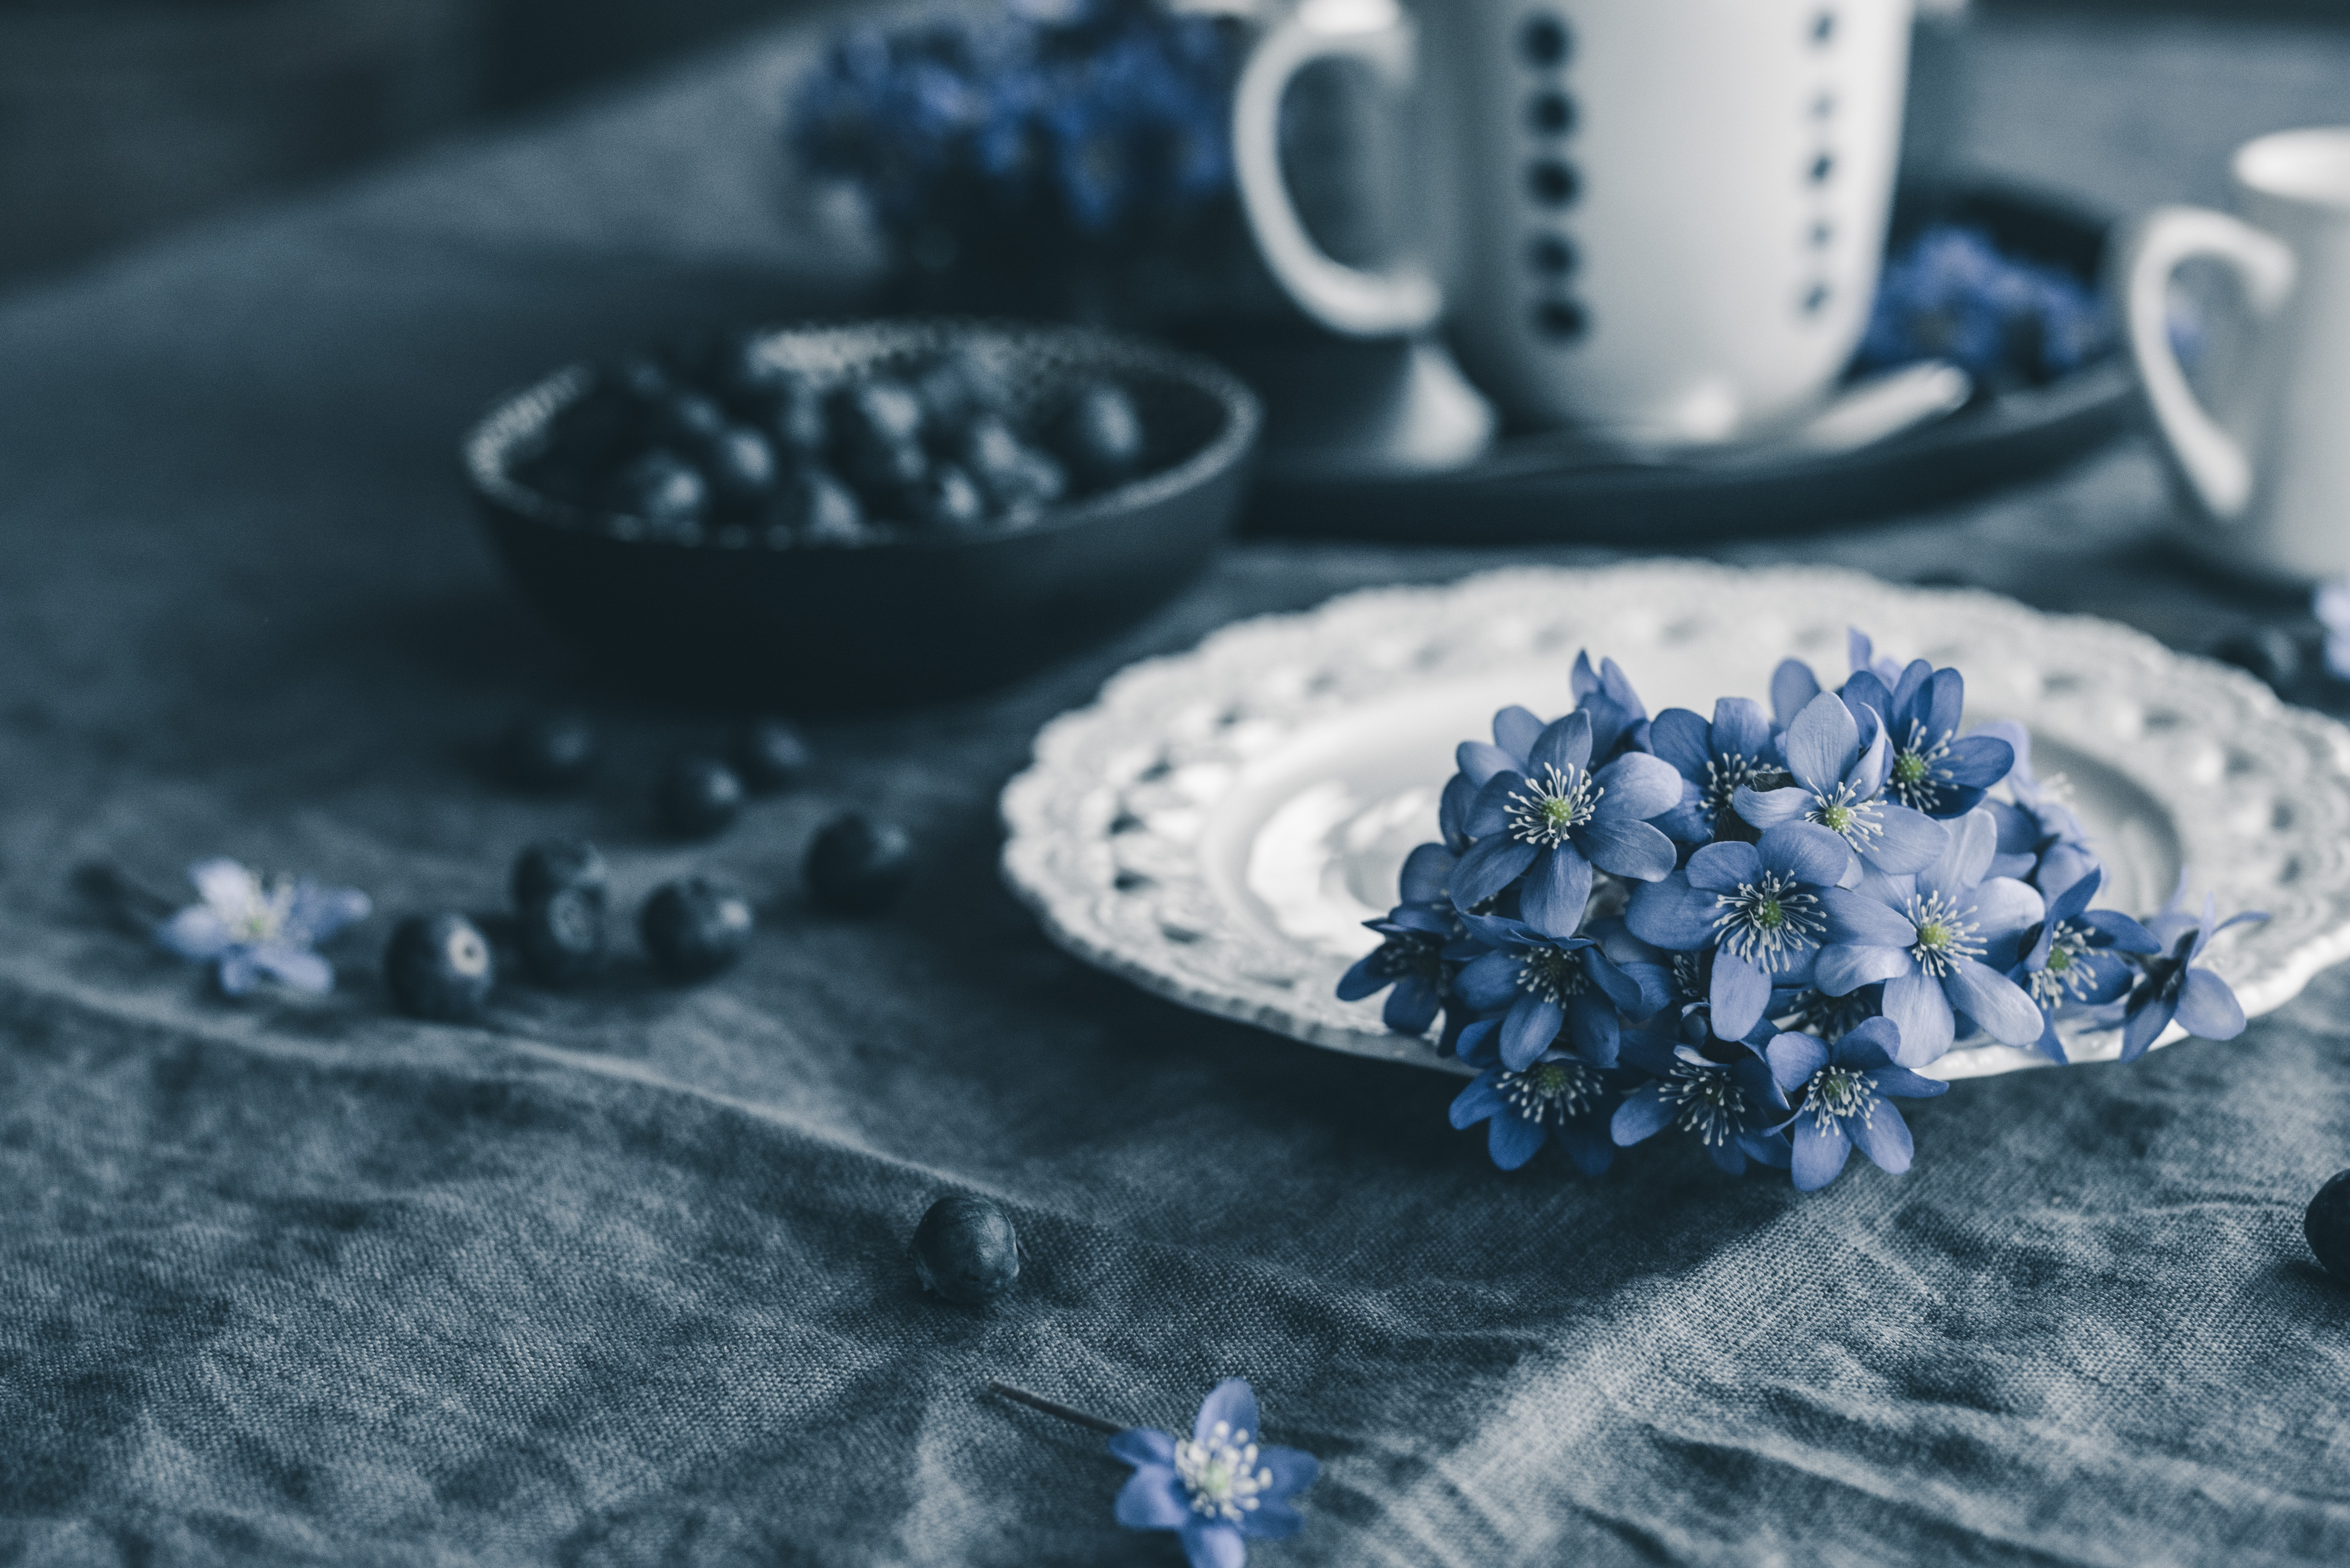 selective focus photo of blue flowers on white plate